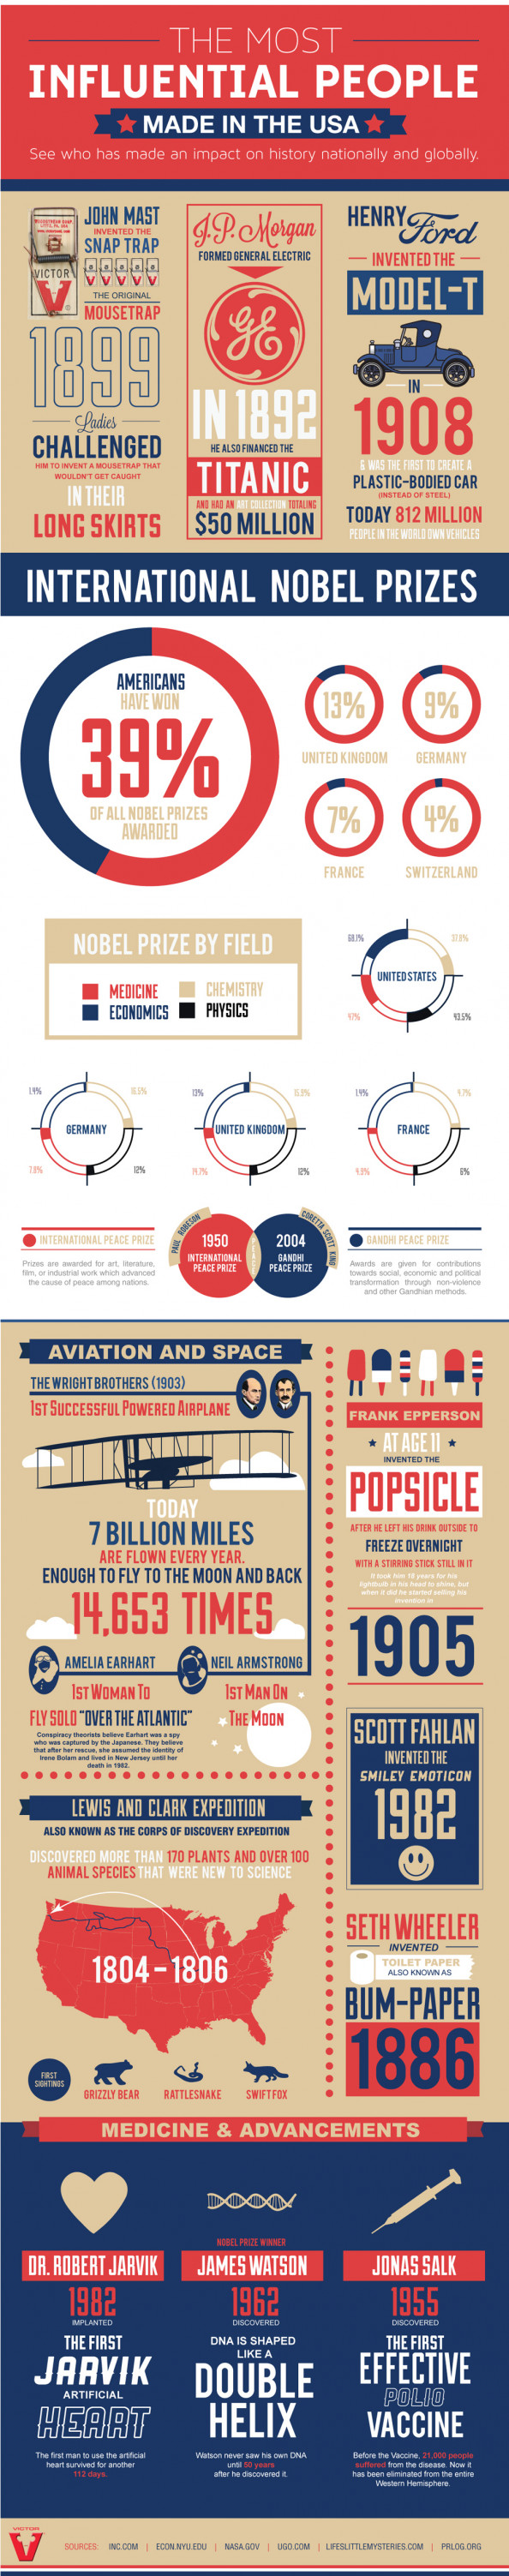 The Most Influential People Made in the USA Infographic